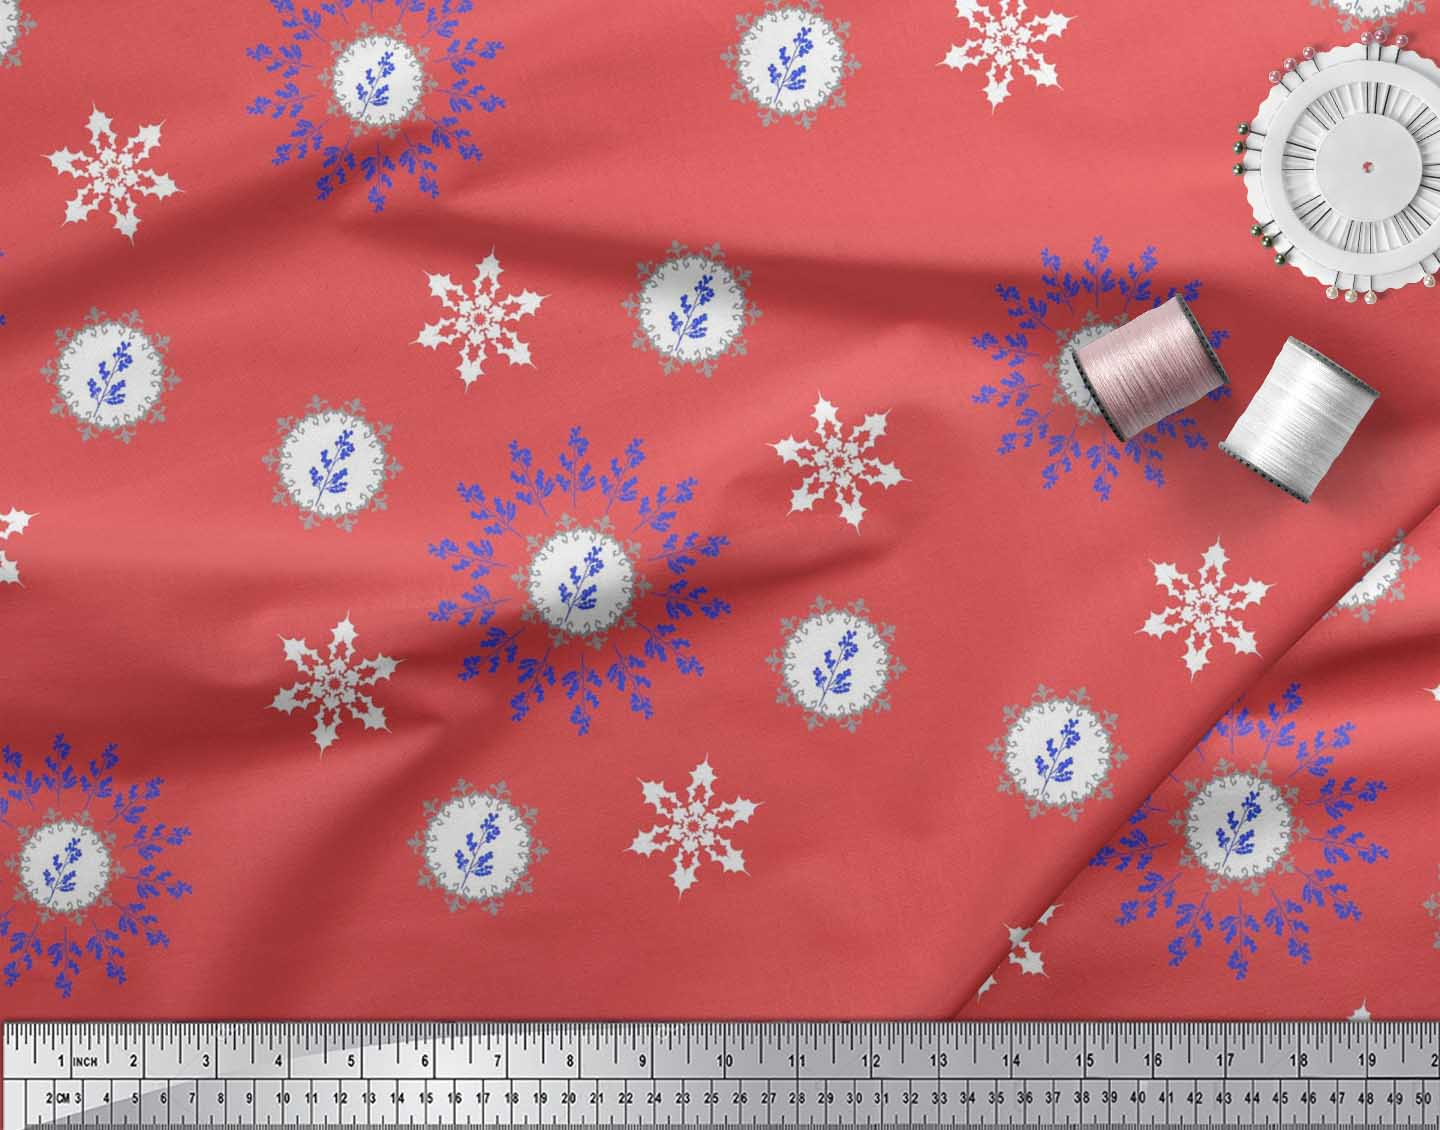 Soimoi-Fabric-Berries-amp-Damask-Decorative-Printed-Craft-Fabric-bty-DC-513A thumbnail 28